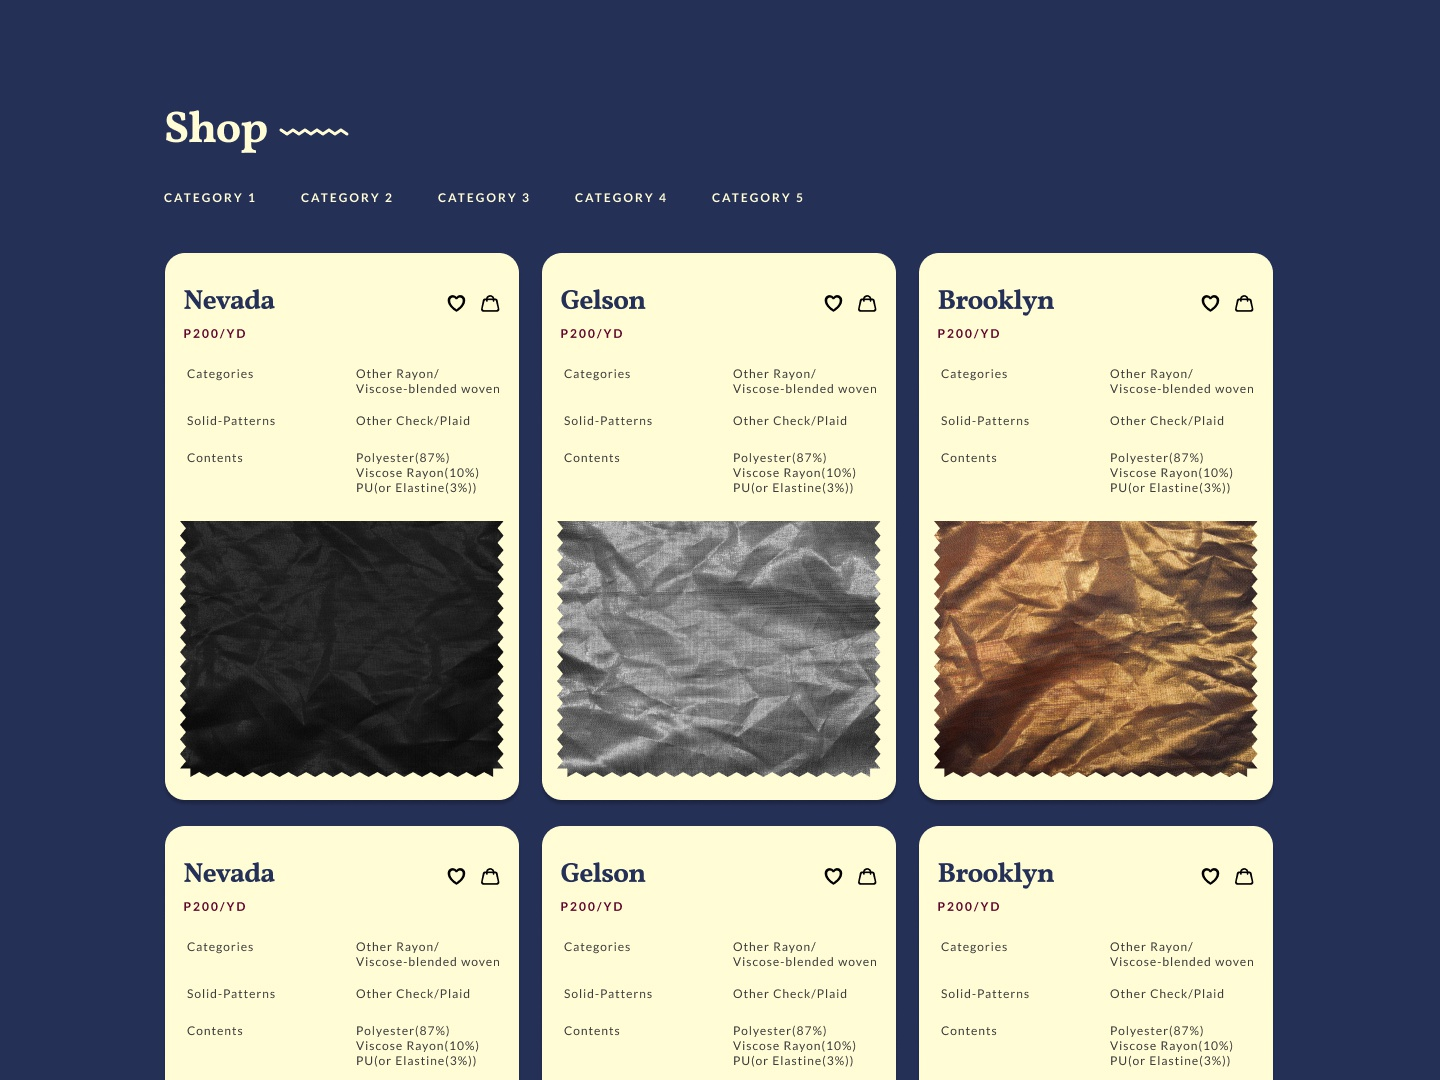 Product cards for a product company website cards design lato web design figma